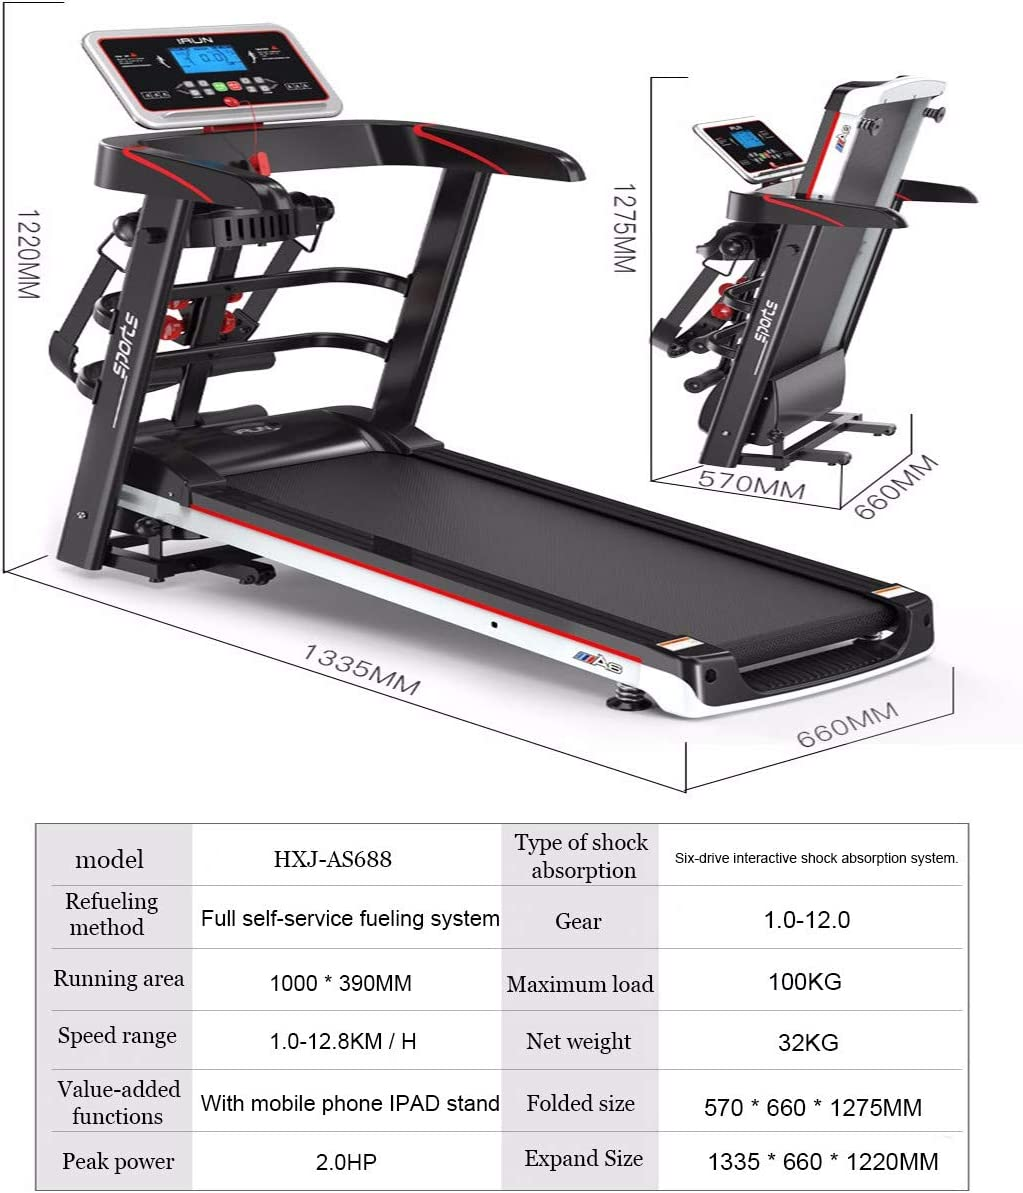 1.5 HP Quiet Motor JJGS Electric Treadmill Foldable Running Machines 12 Training Programs Cushioning System Up To 120kg Large Treads Versatile 12.8Km // H